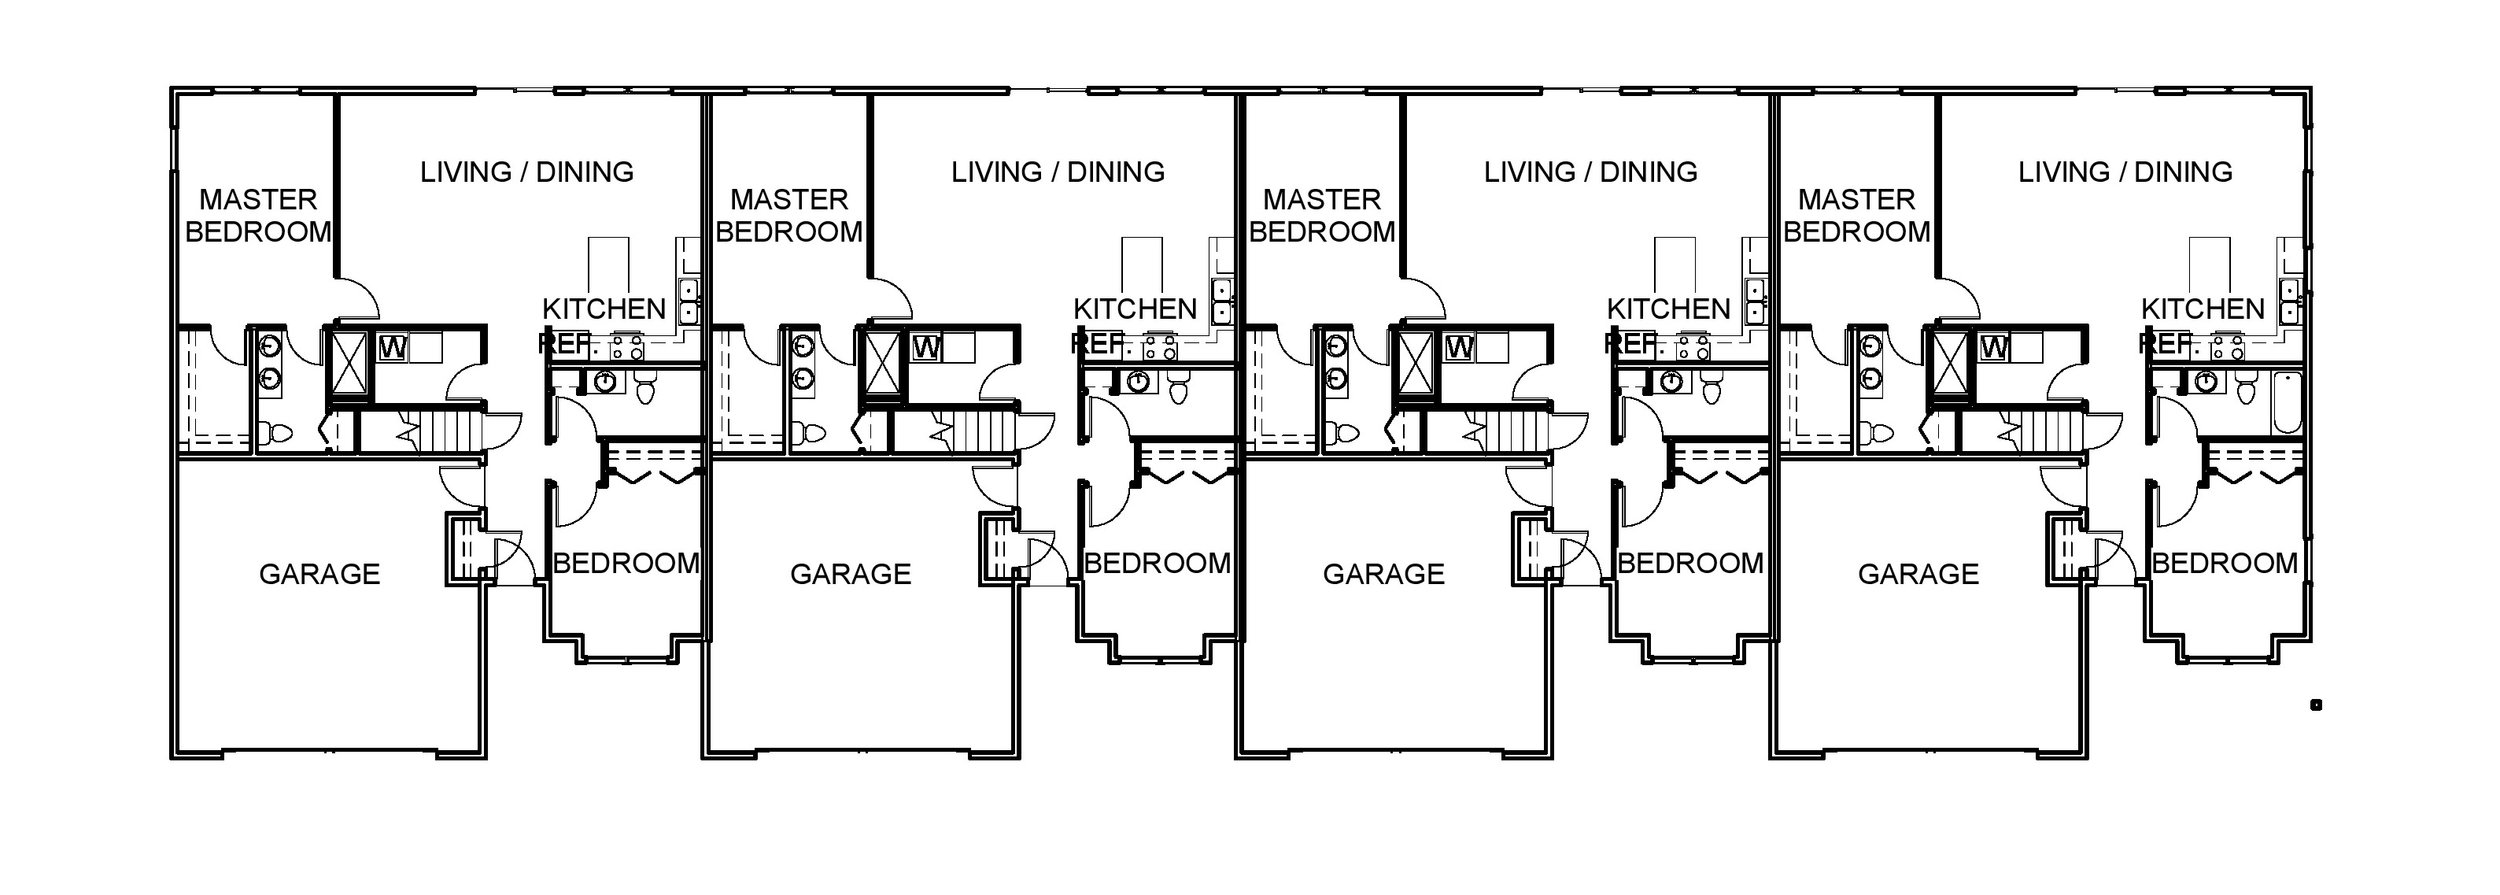 4-Unit 1 Story floor plan.jpg